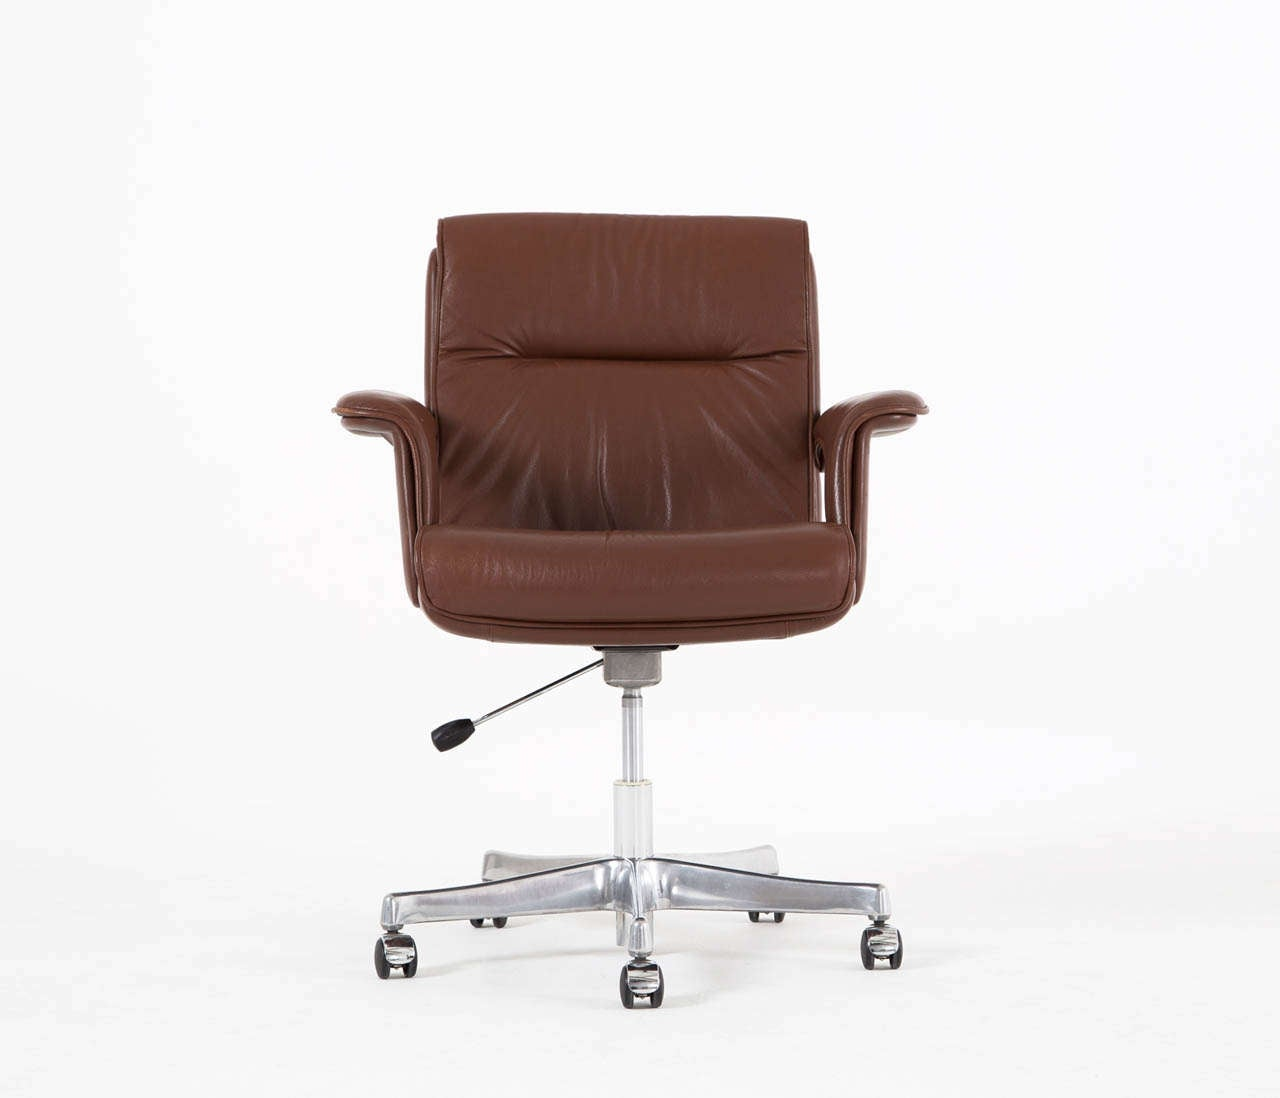 office chair for sale bar stool executive conference desk in brown